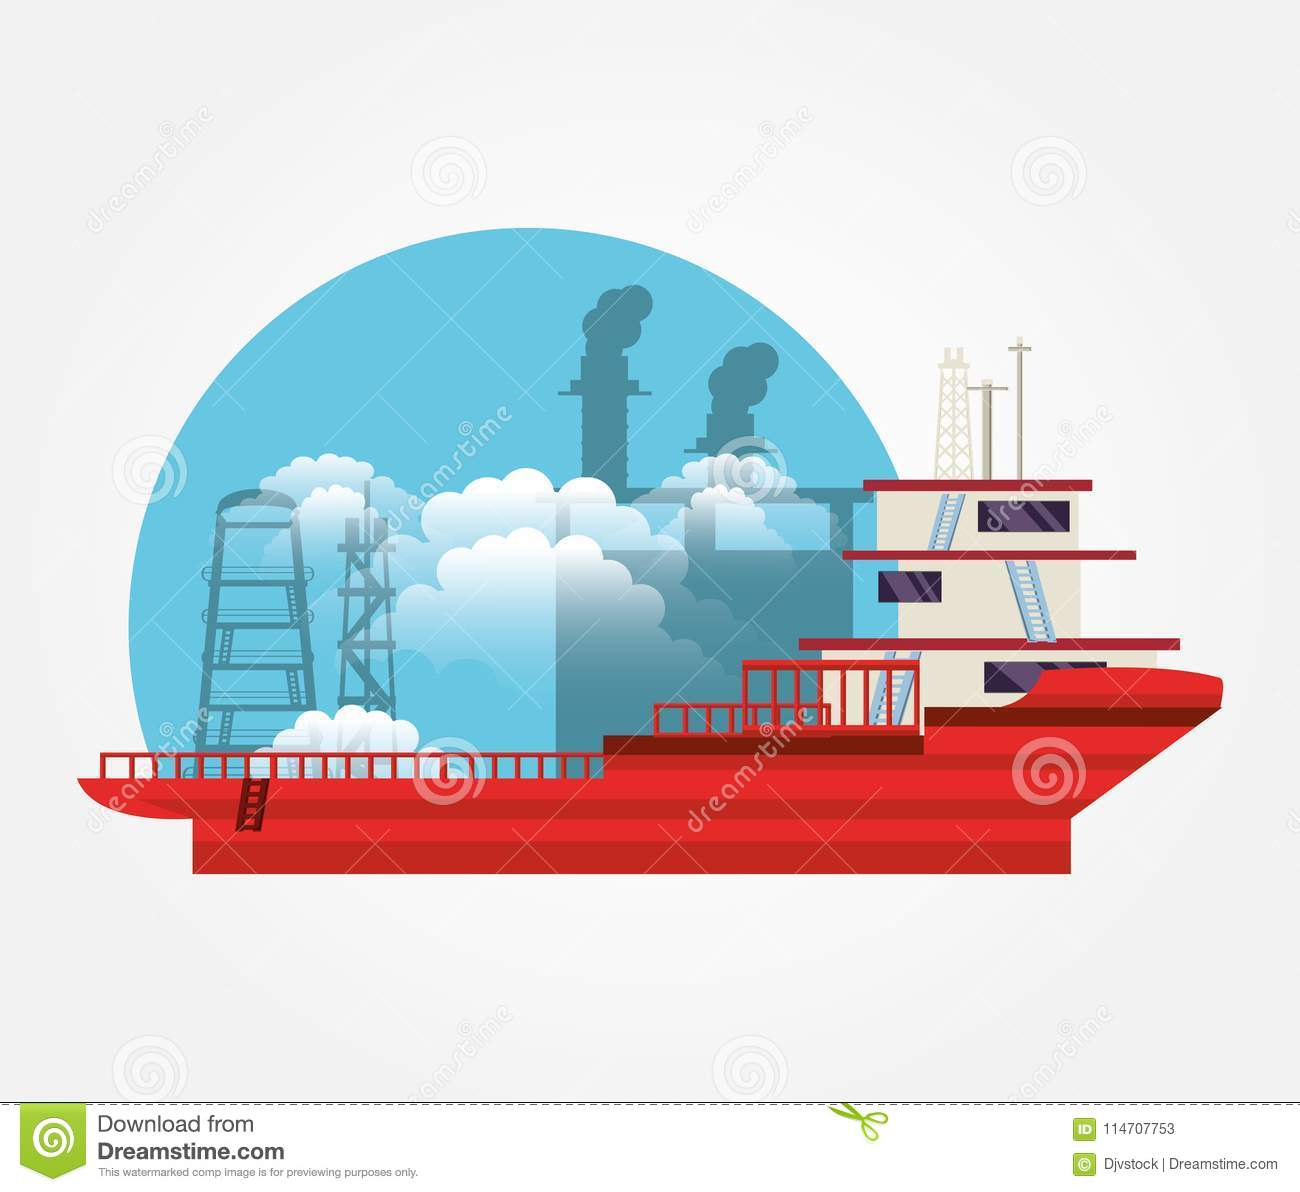 hight resolution of oil industry with ship freighter